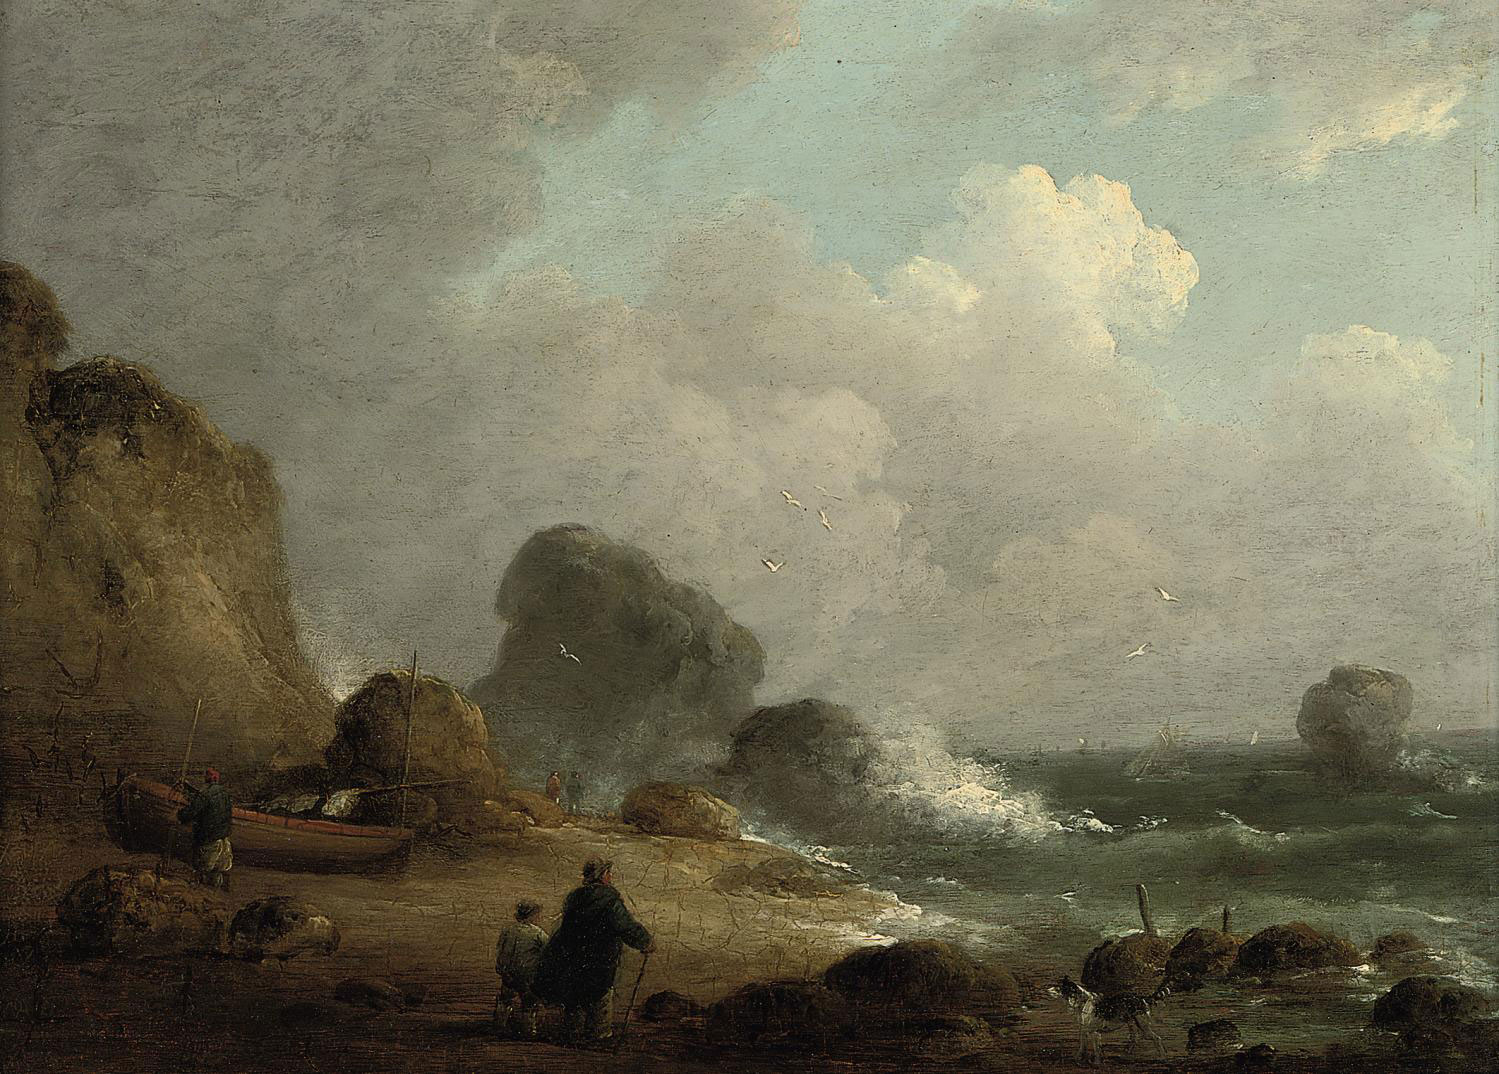 Attributed to George Morland,